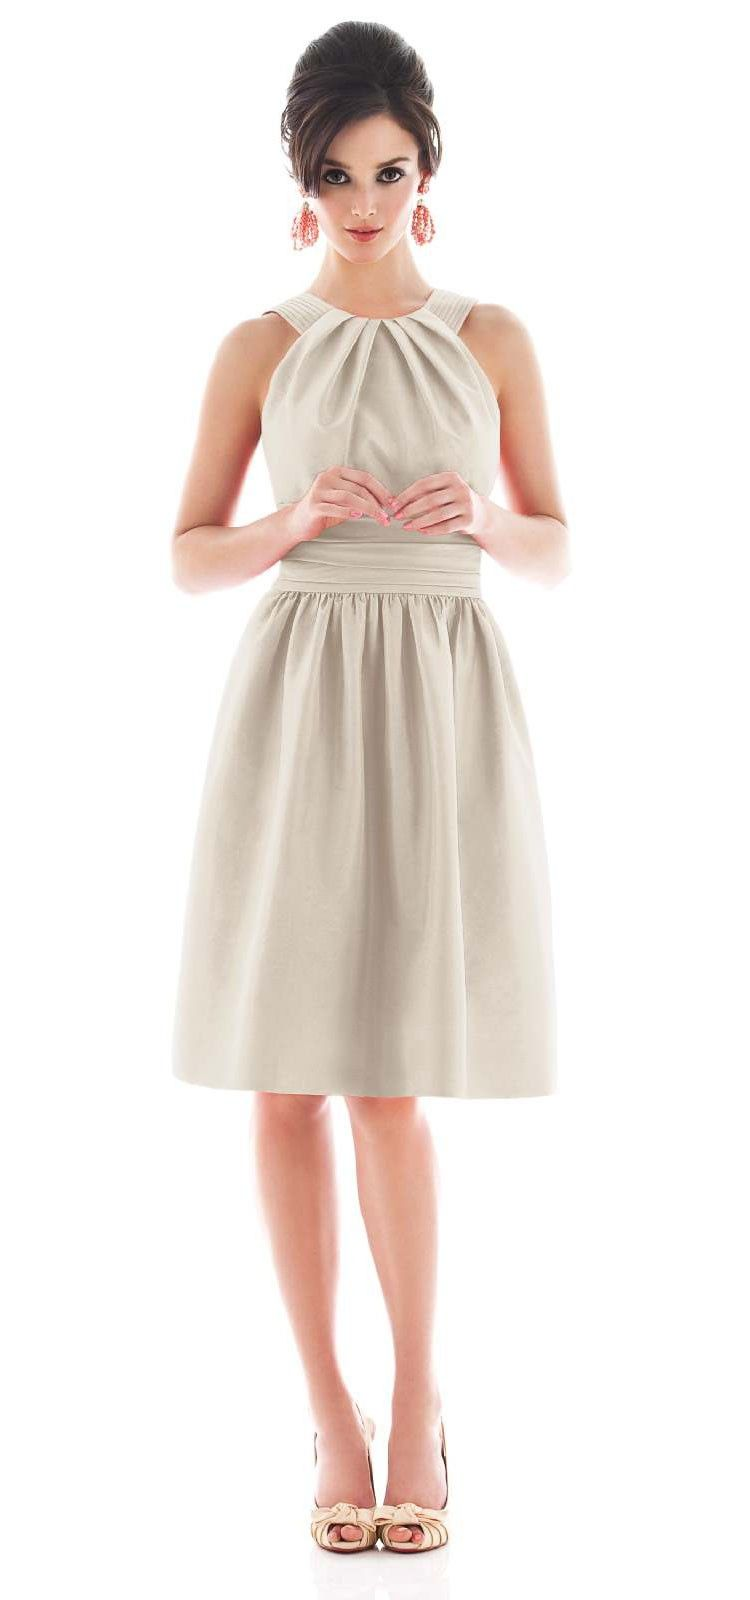 Champagne colored bridesmaid dress the bridesmaids pinterest champagne colored bridesmaid dress ombrellifo Images